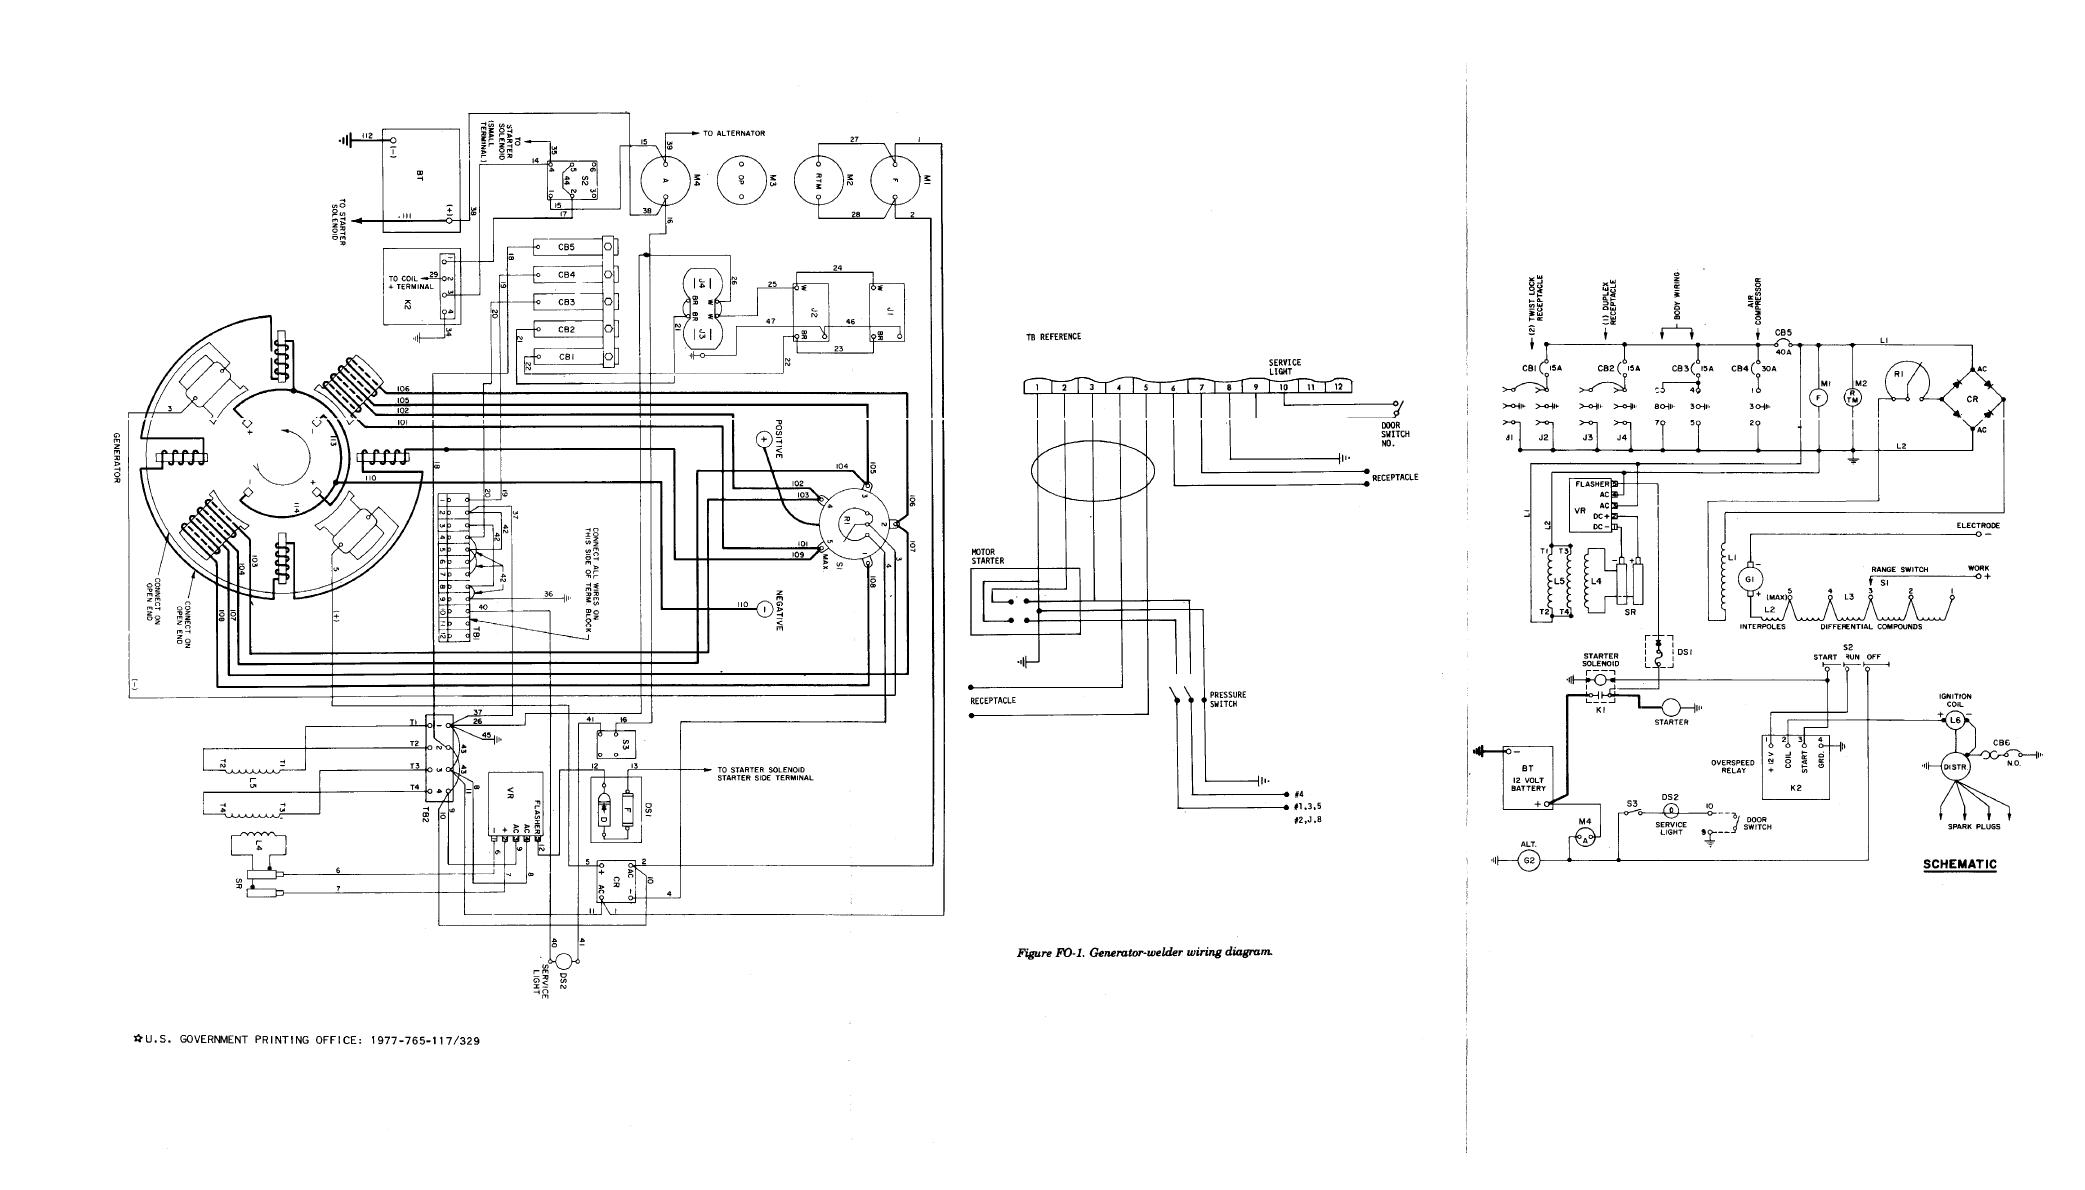 Old 1972 Honda Cb350 Parts Diagram. Honda. Auto Wiring Diagram